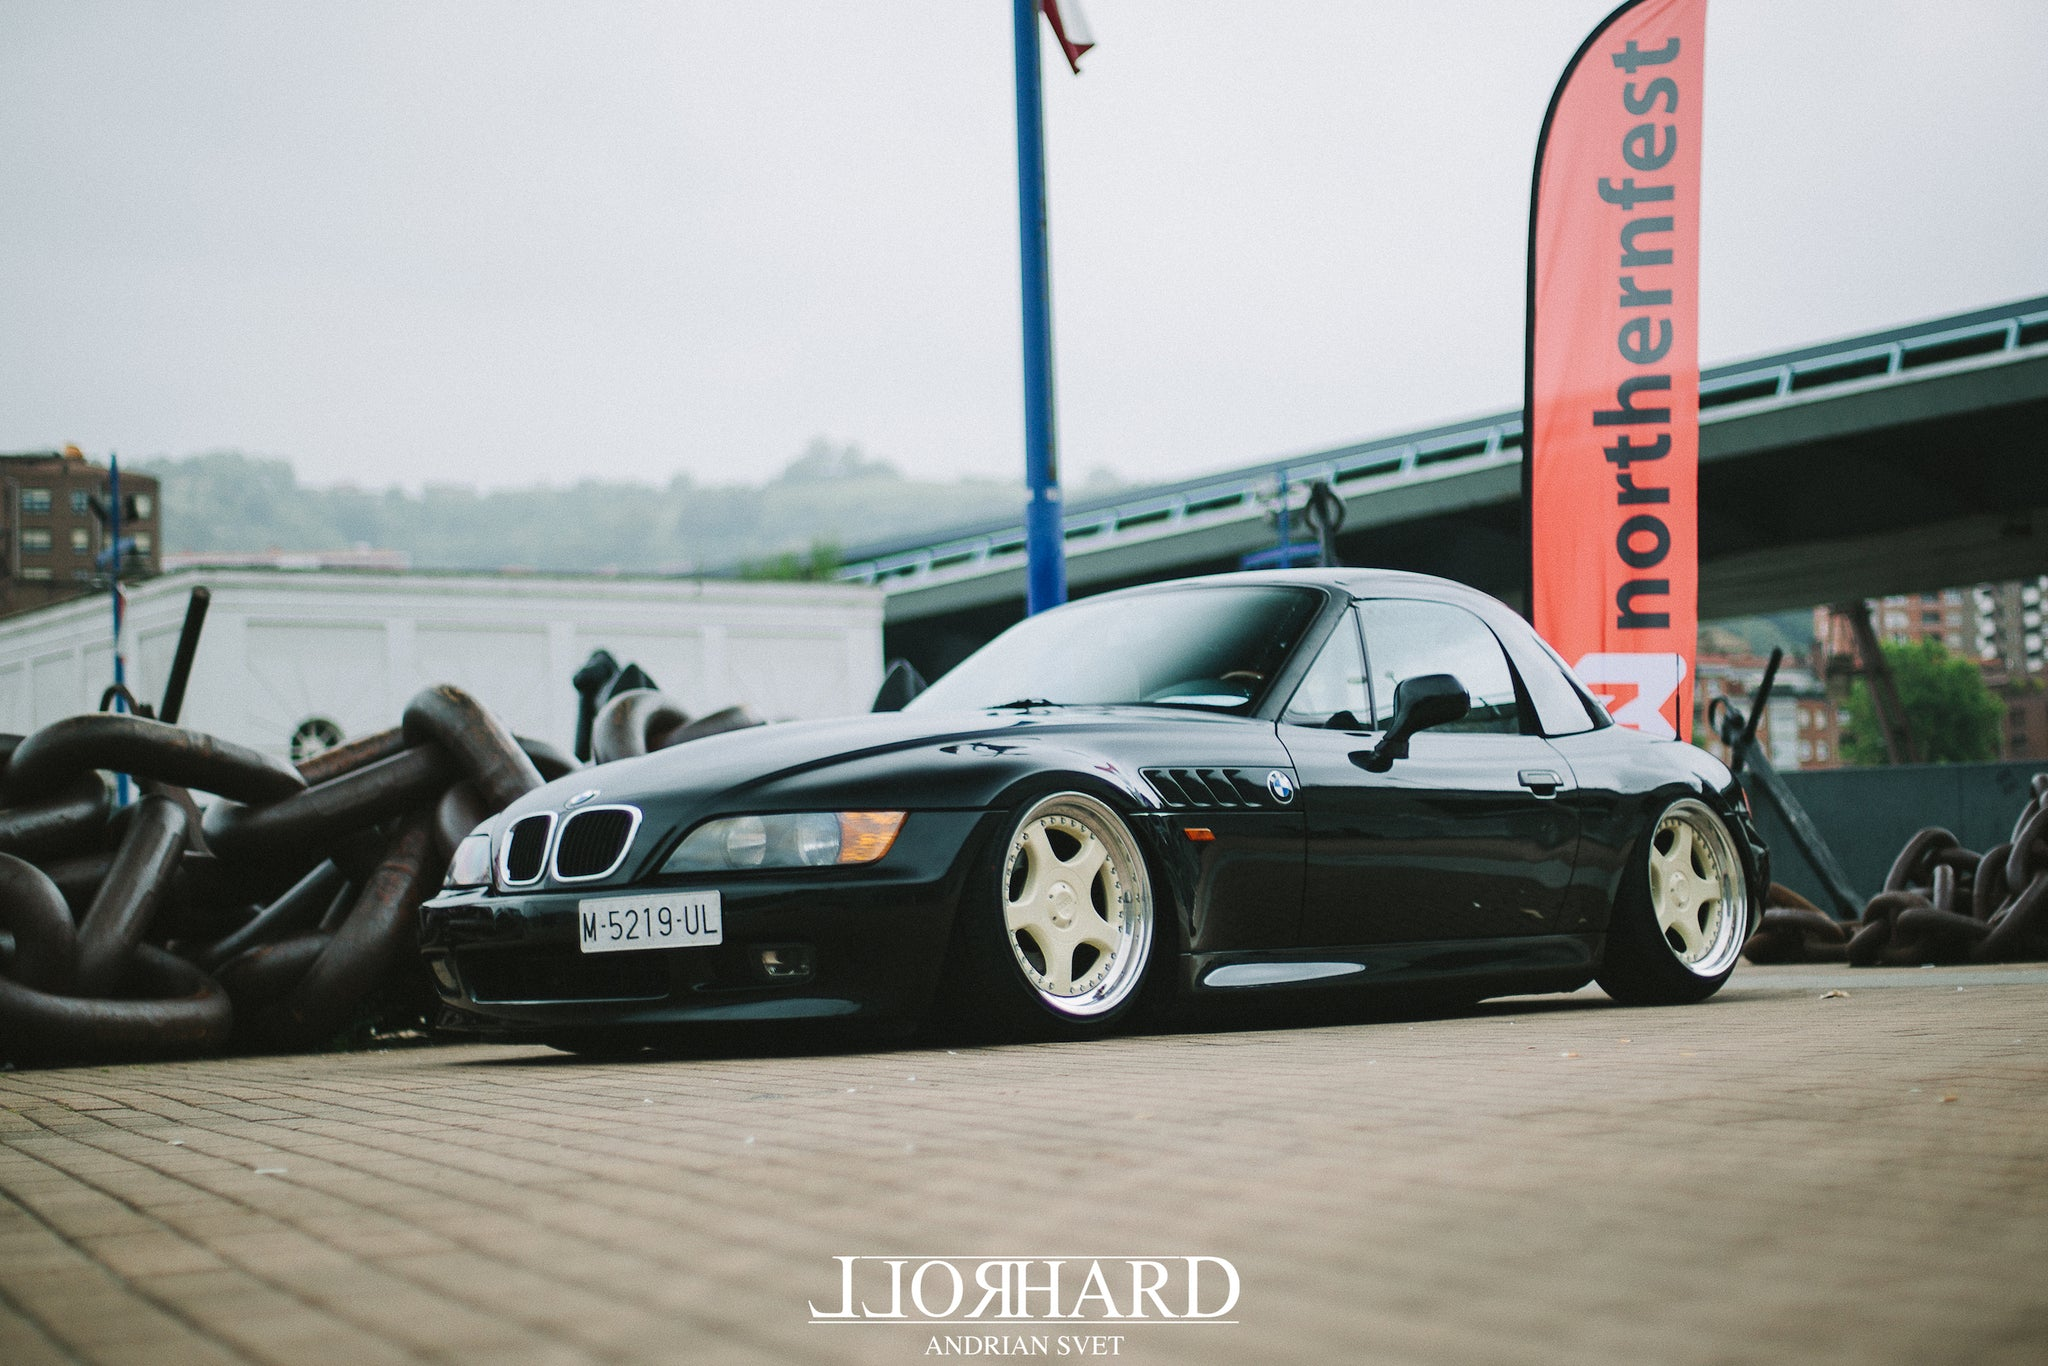 Northernfest Bilbao 2018, RollHard Event Coverage - Spanish Car Scene, Modified Cars, Low Cars, Performance Volkswagen, Slam Sanctuary, ILB Drivers Club, Euro Crew Spain